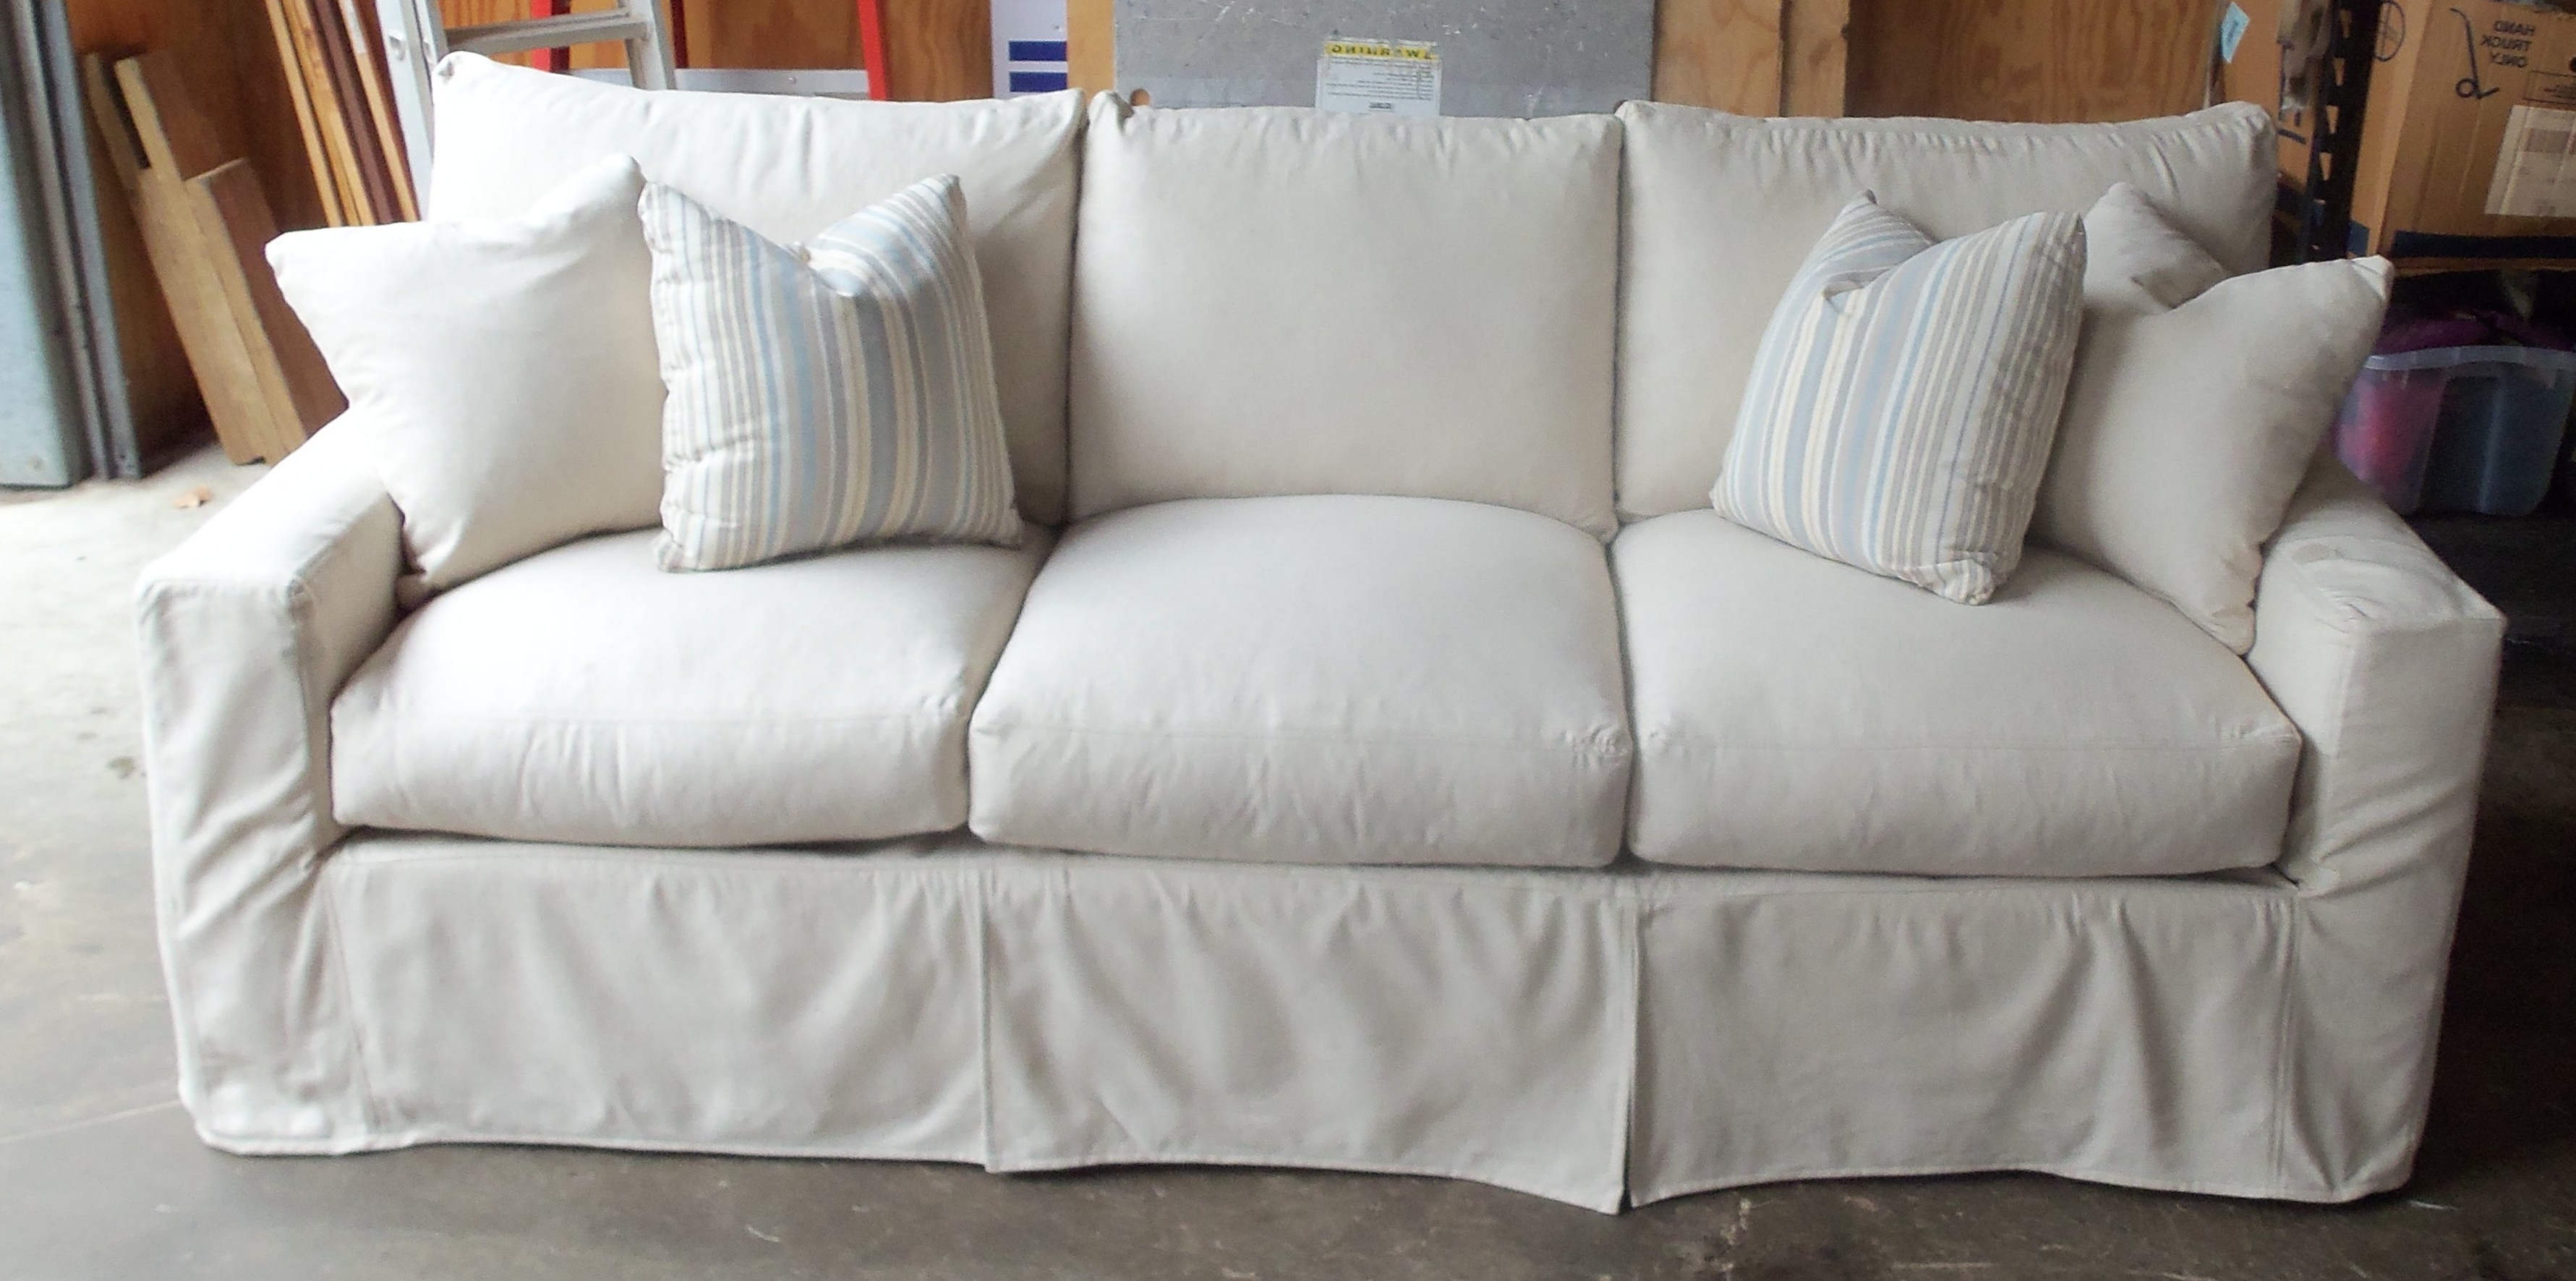 Well Known Furniture: Couch Outlet With Couch Slipcovers Intended For Slipcovers Sofas (View 14 of 15)